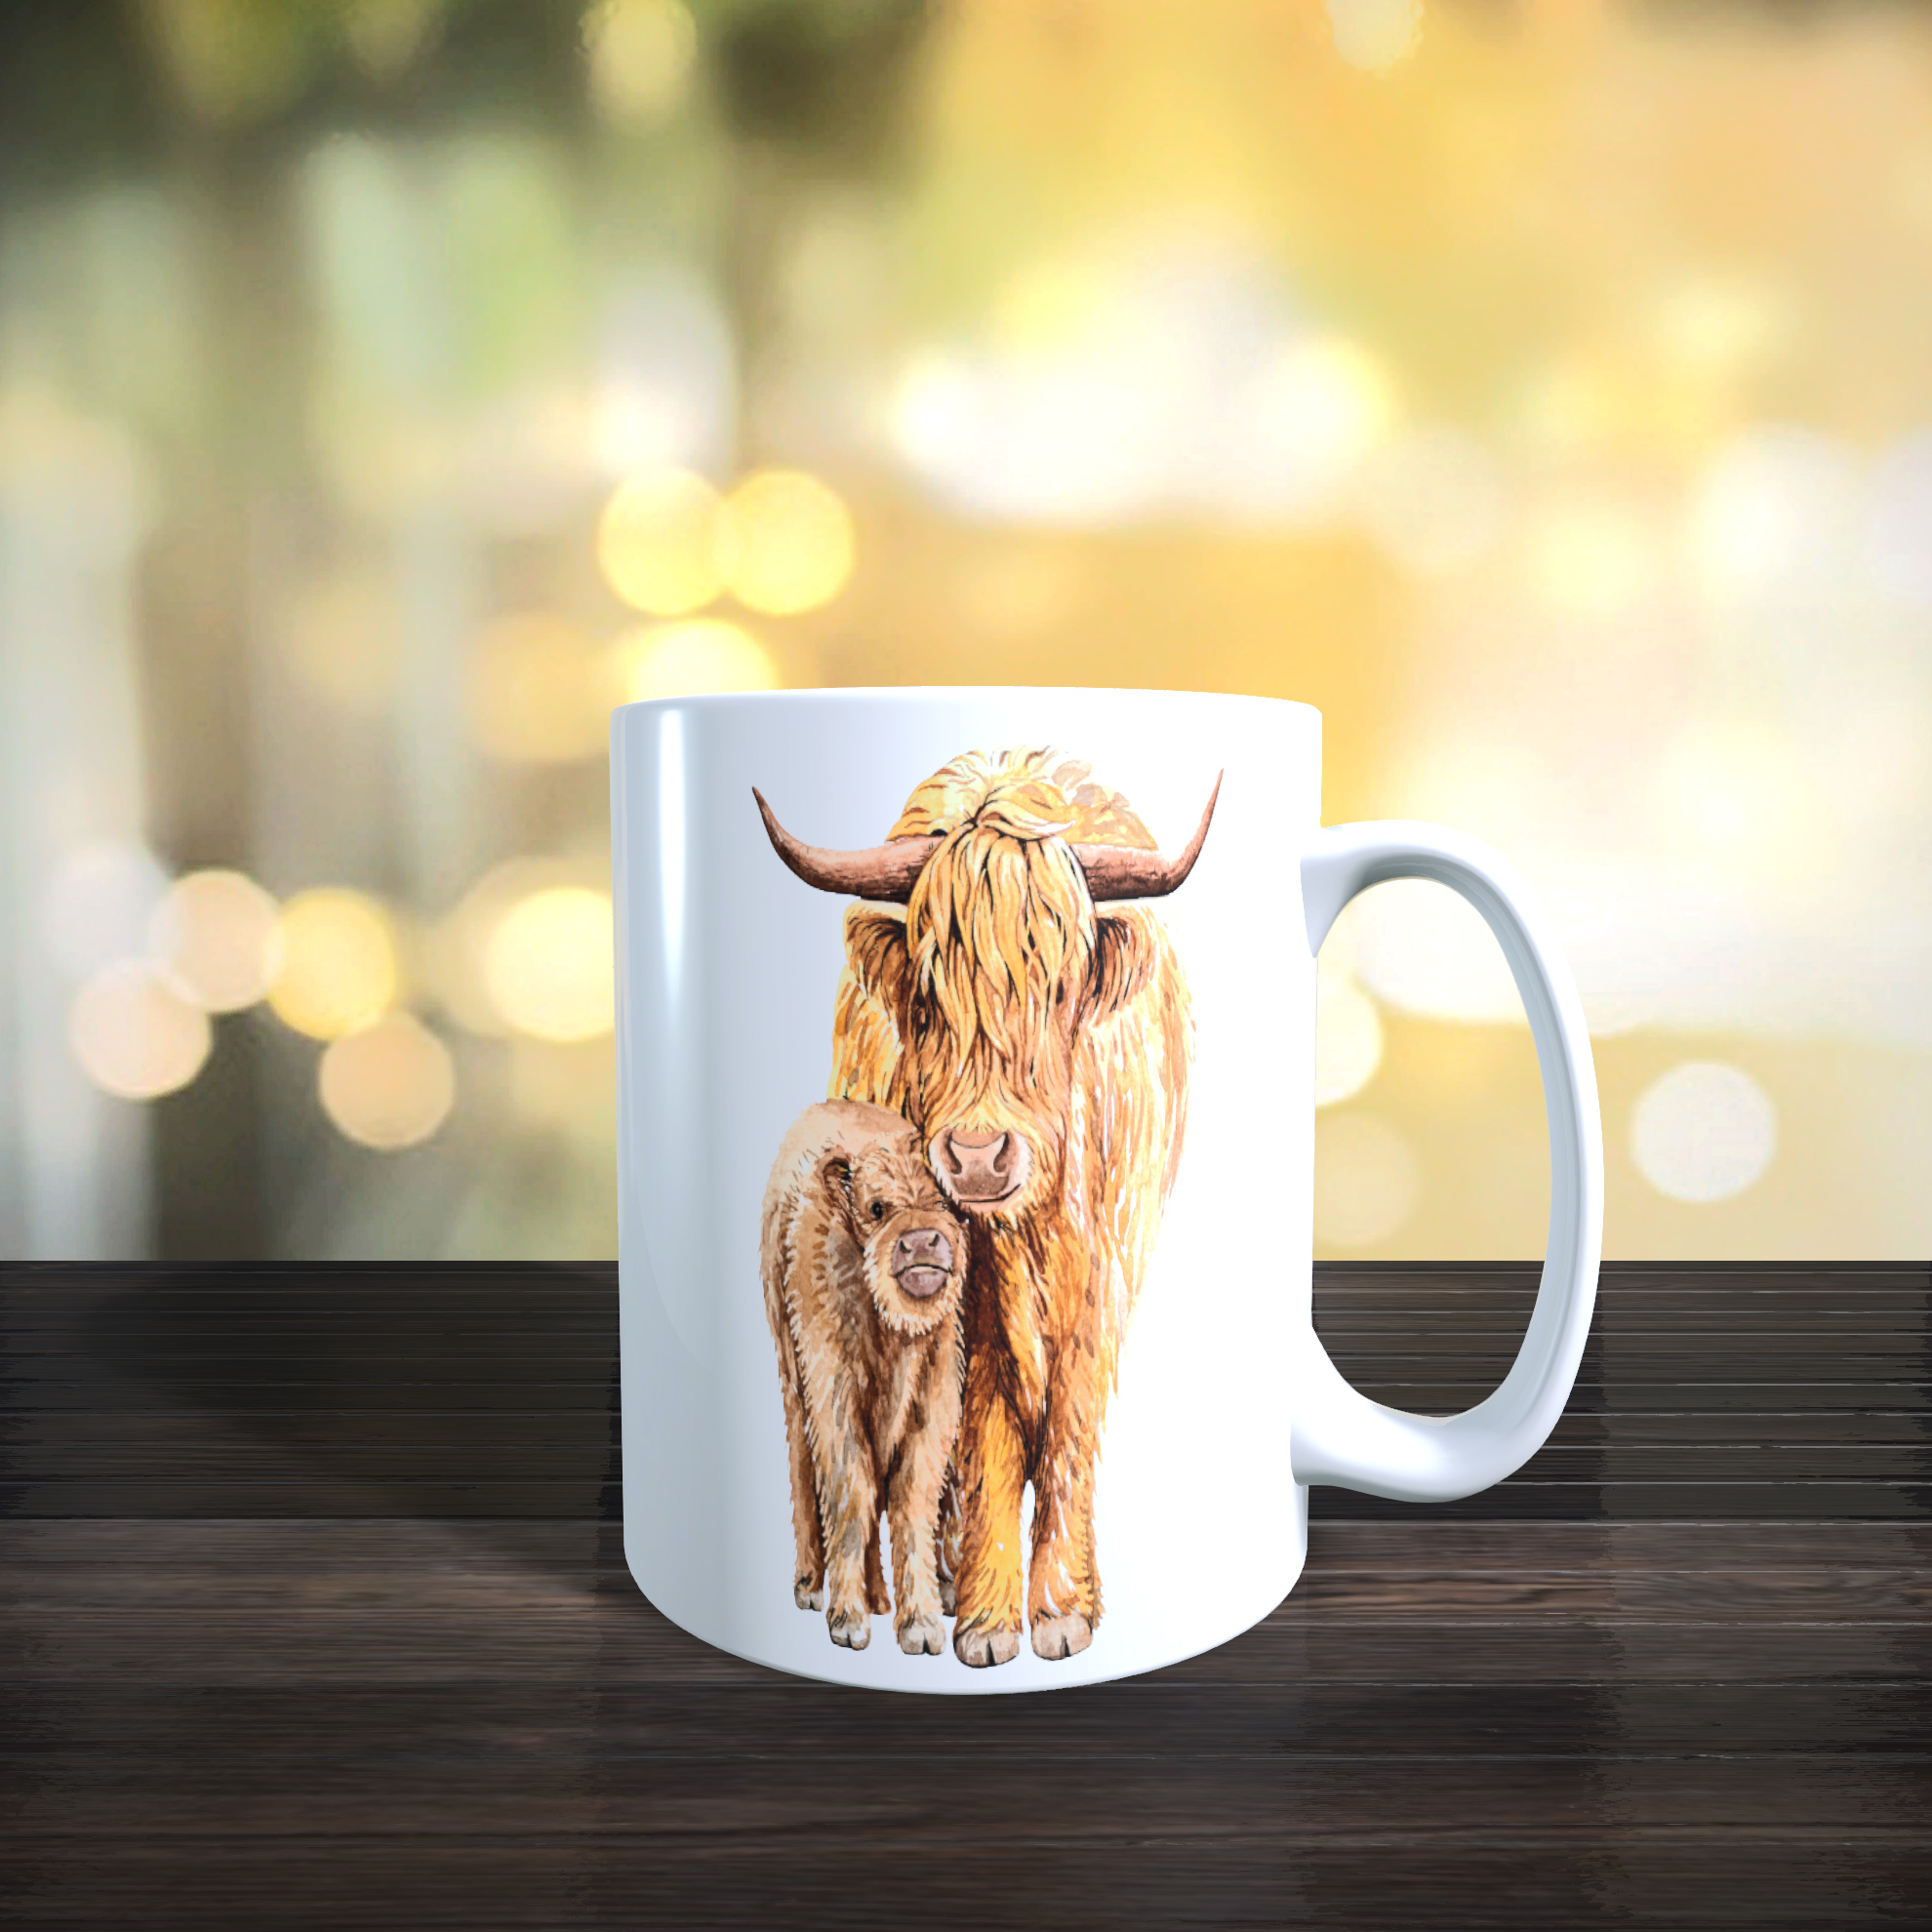 Cute Mother and Baby Yak 11oz Ceramic Mothers Day / Birthday Gift Mug.